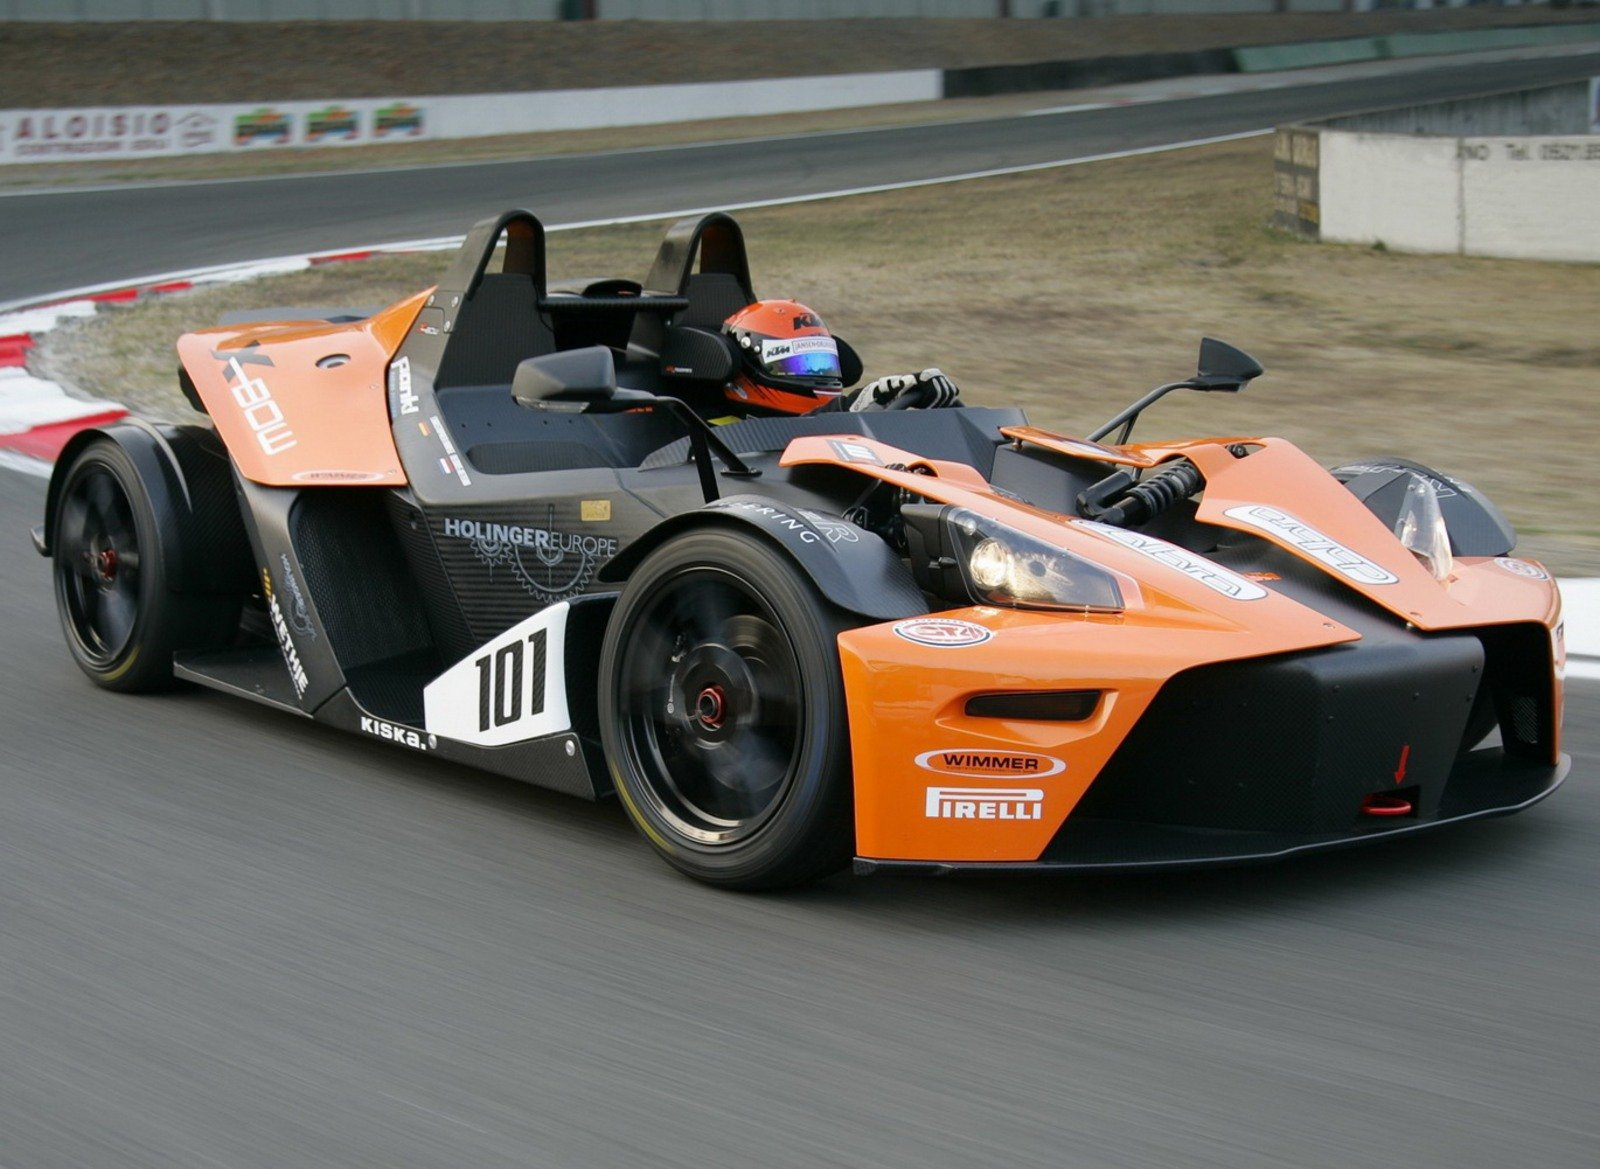 Ktm X Bow Price >> Ktm X Bow Reviews Specs Prices Photos And Videos Top Speed